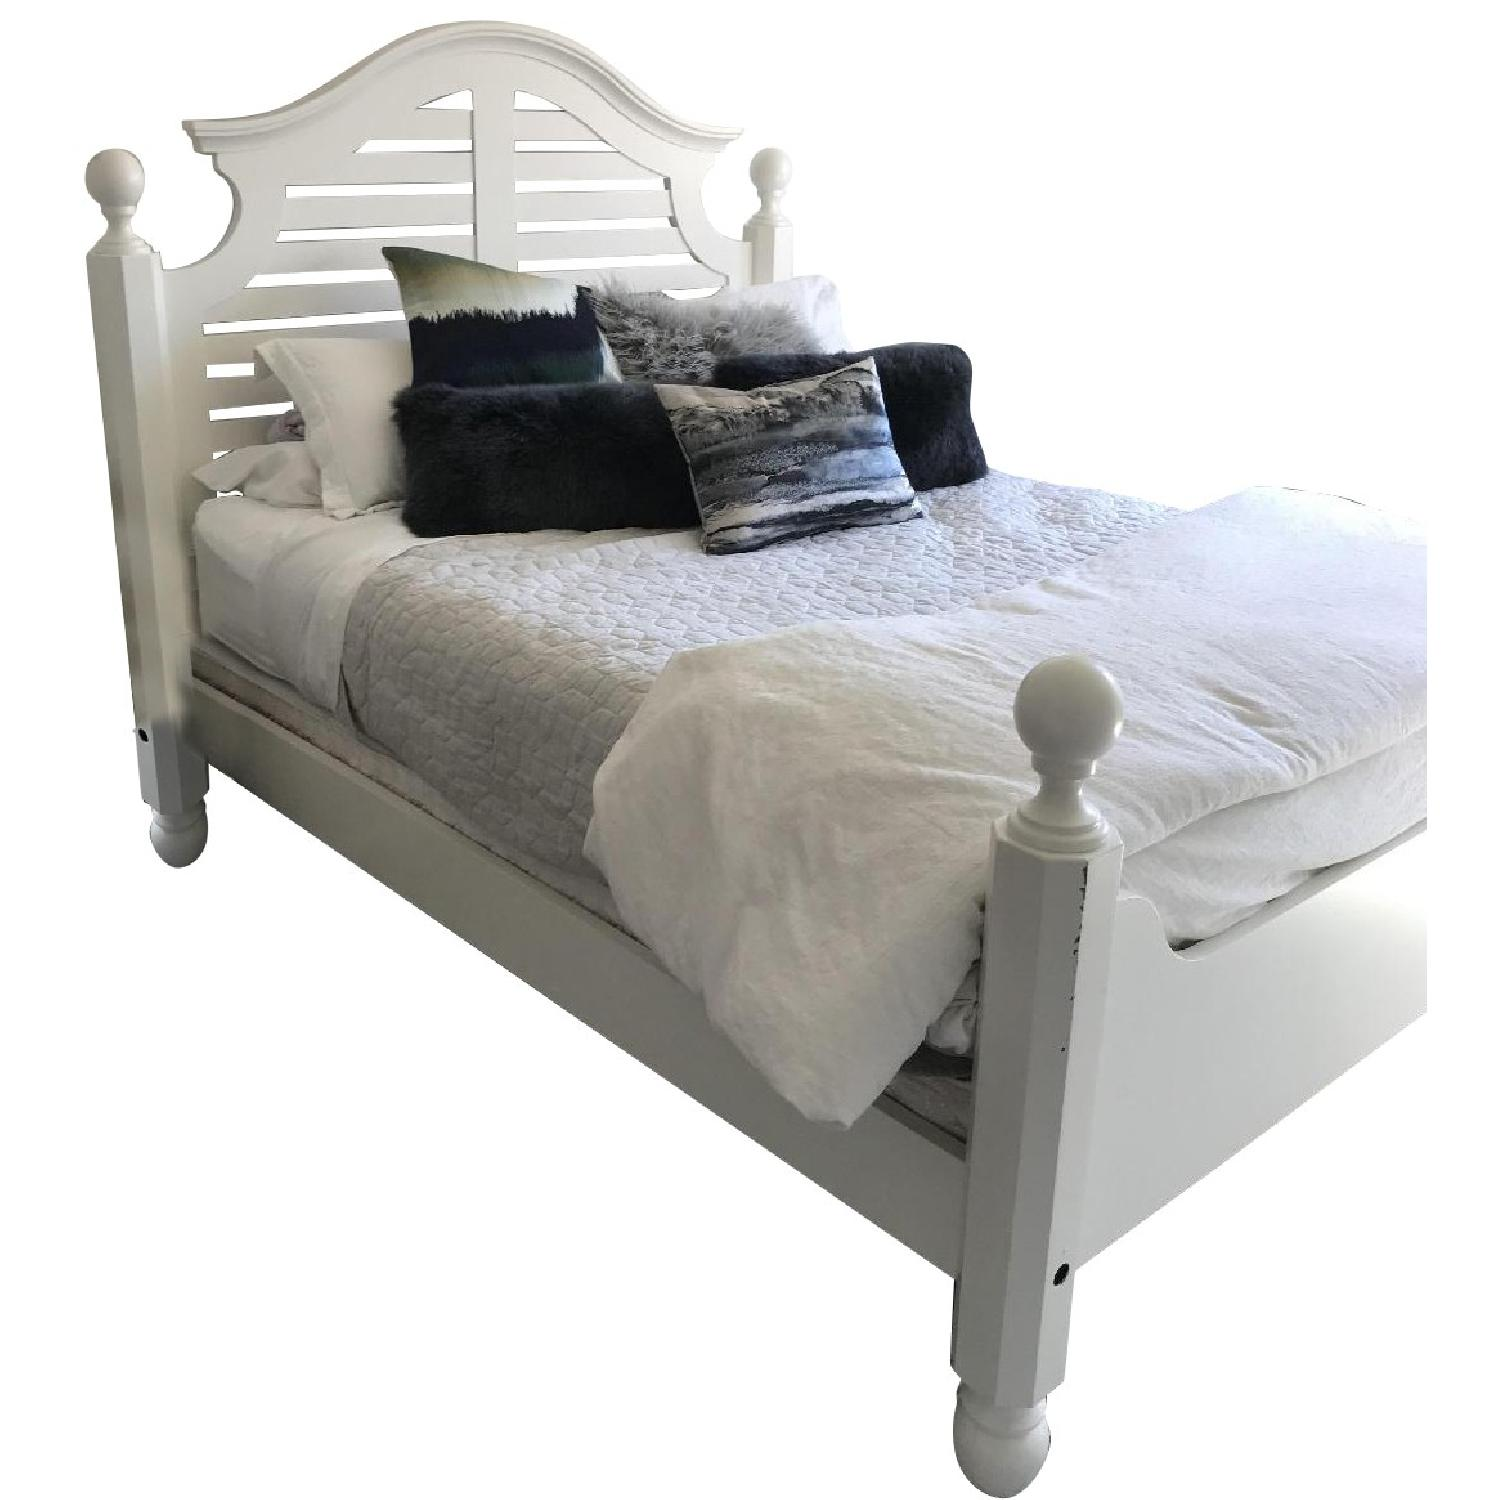 Pottery Barn Classic Queen White Wooden Bed Frame - image-0